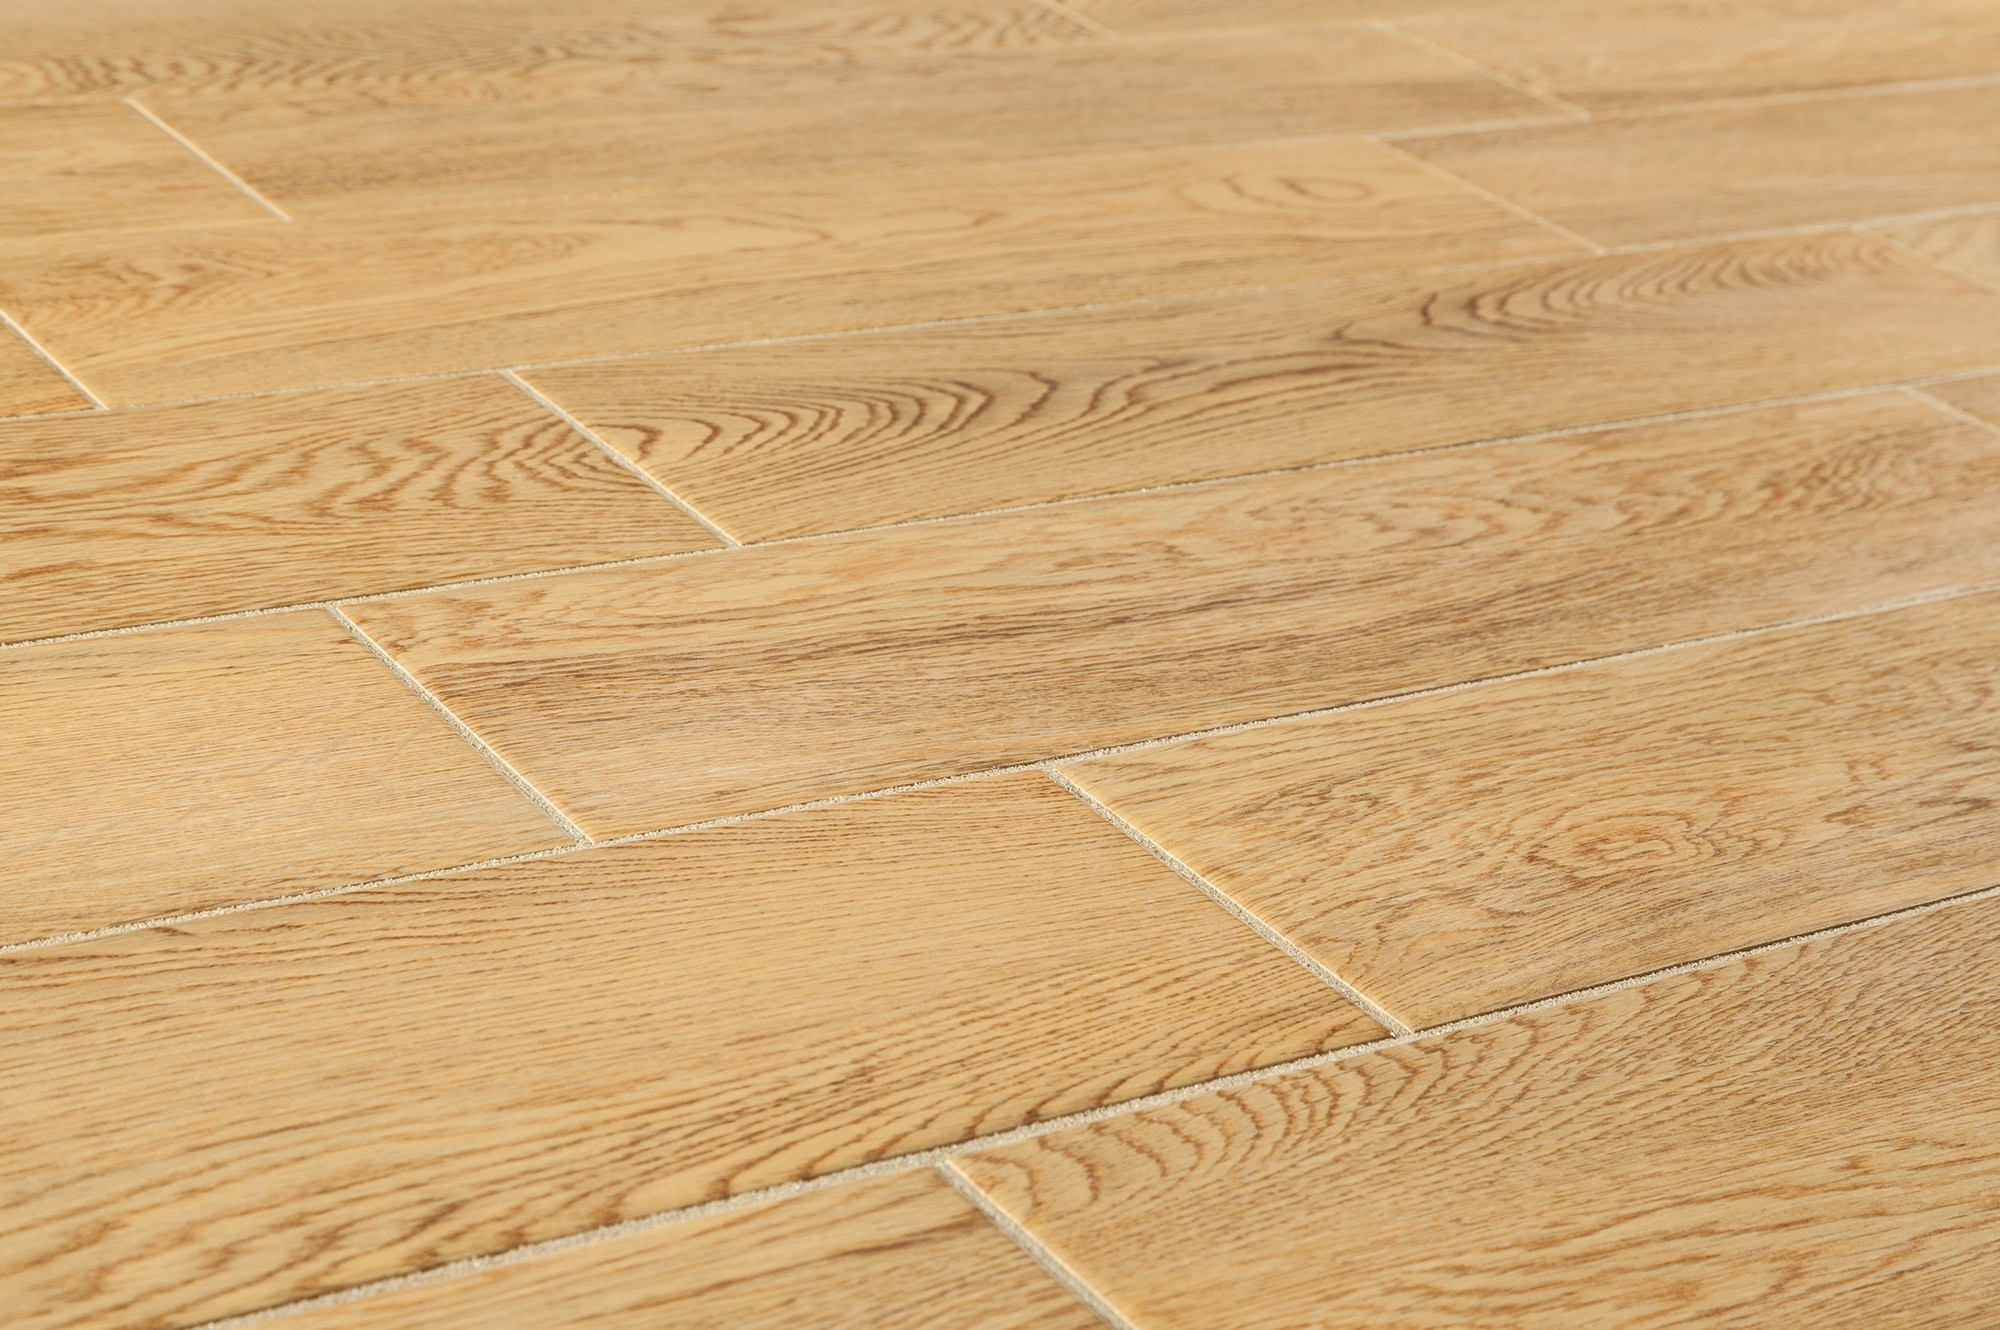 Wood grain ceramic tile